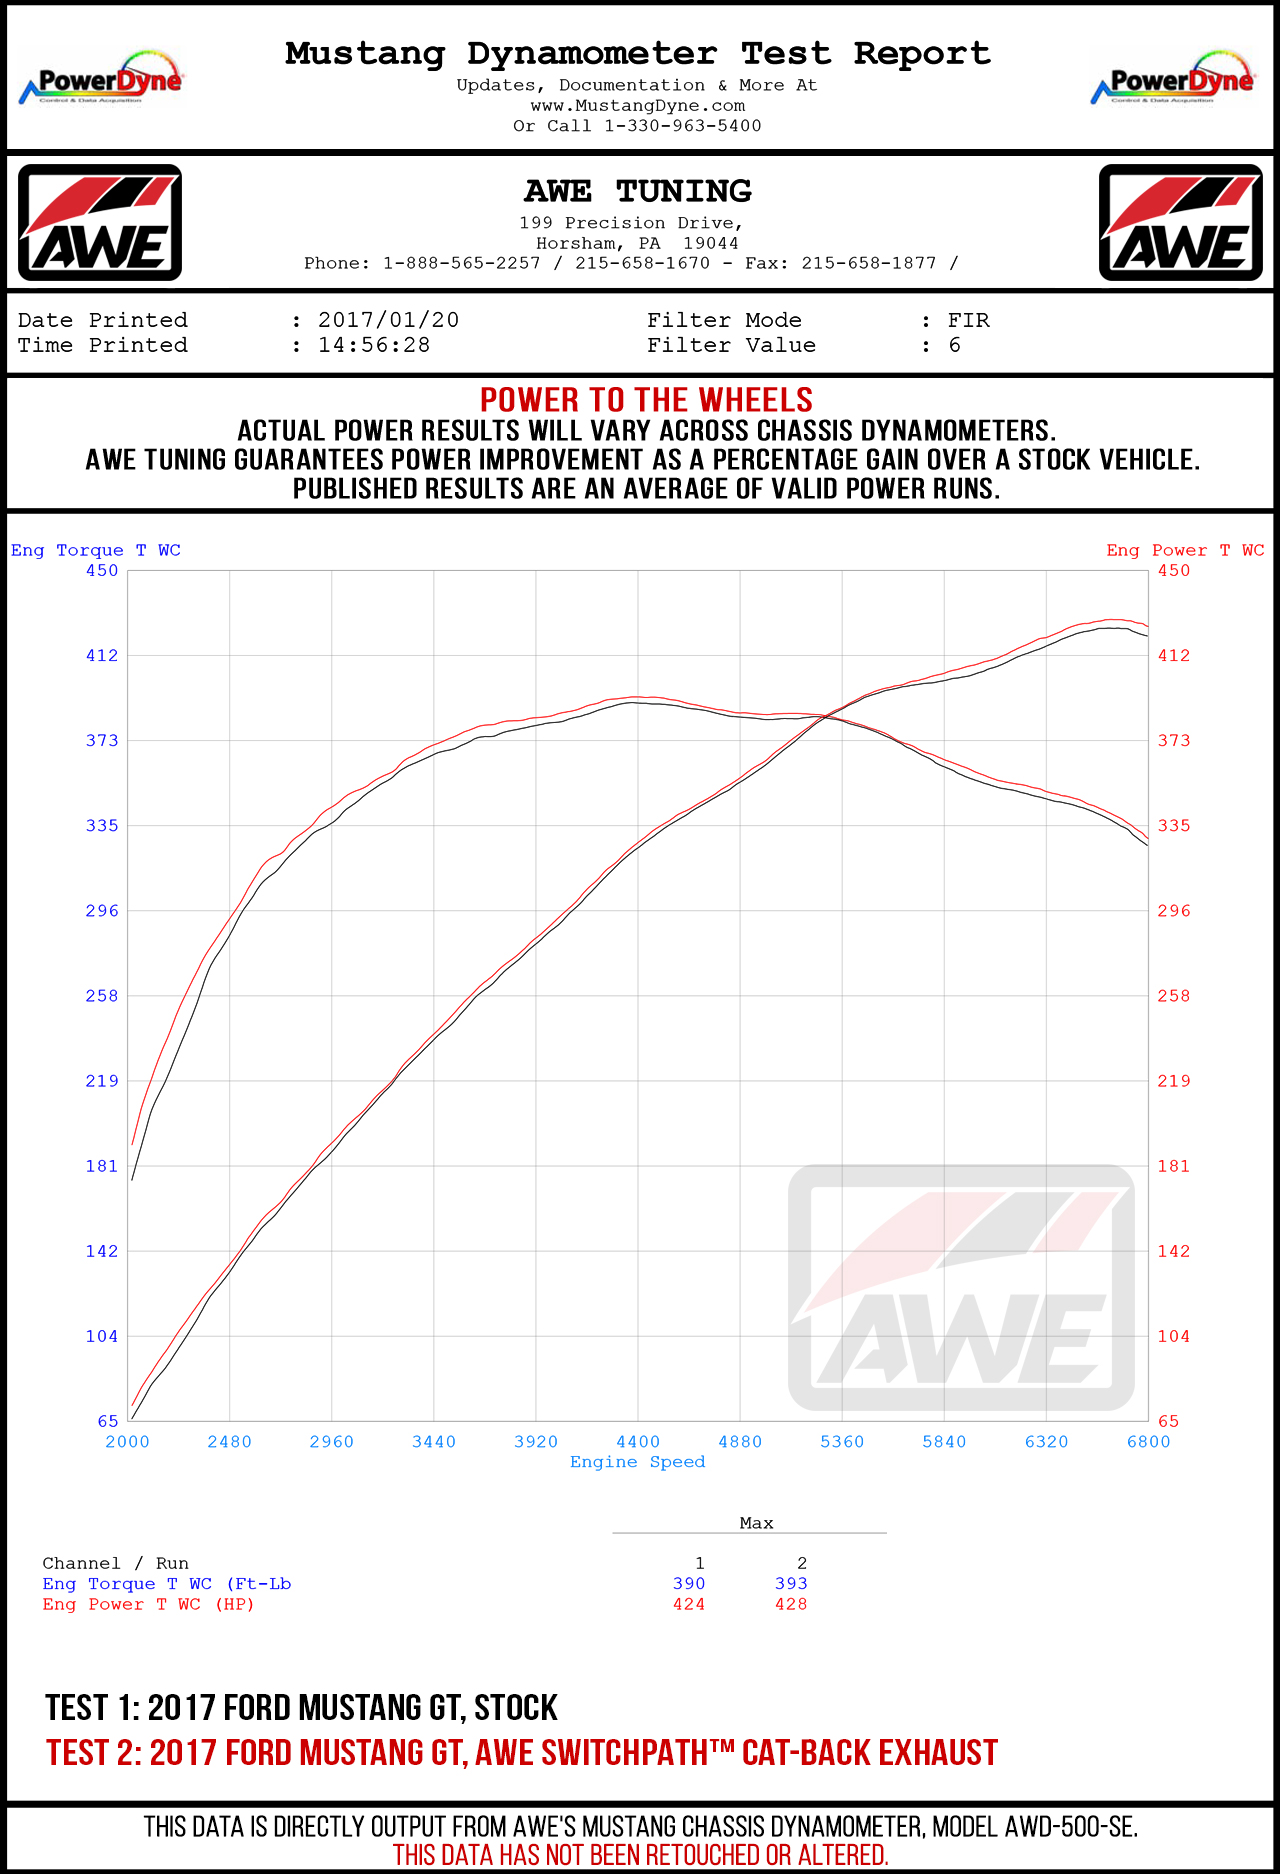 AWE Tuning Cat-Back Exhaust Dyno